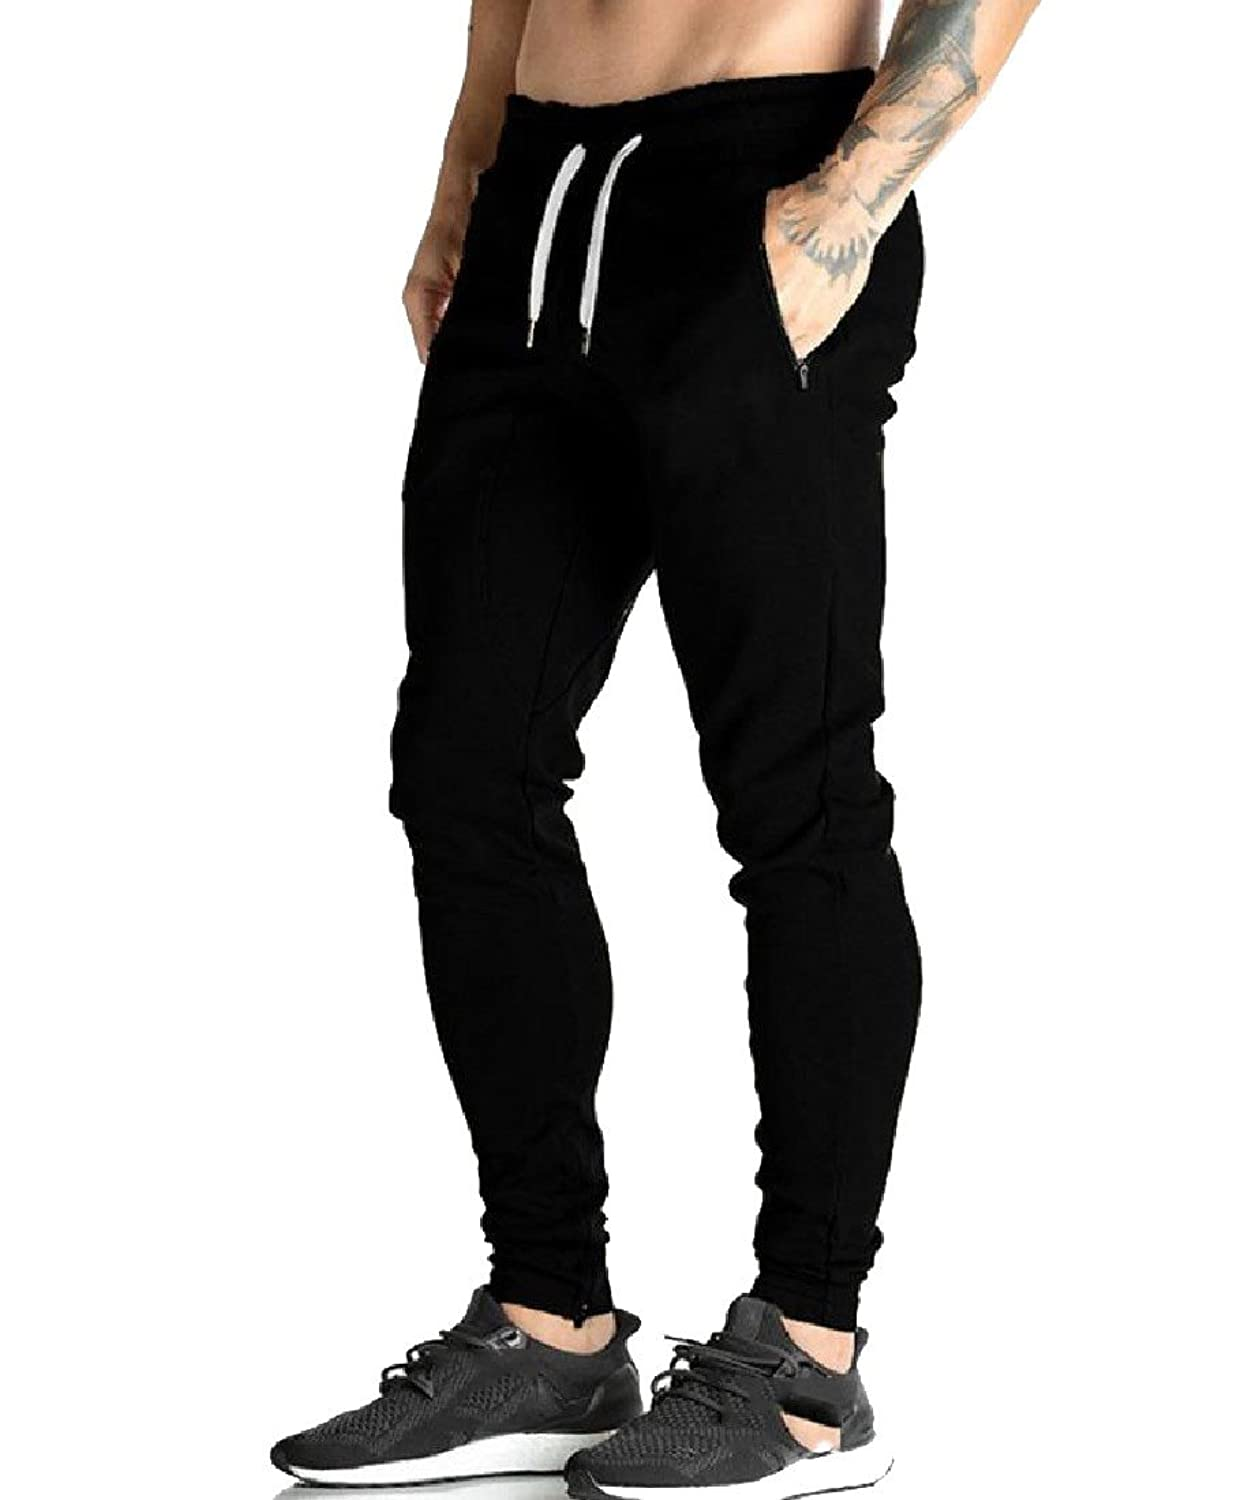 Coolred-Men Sporty With Pocket Fitness Straight Leg Drawstring Casual Pants for sale